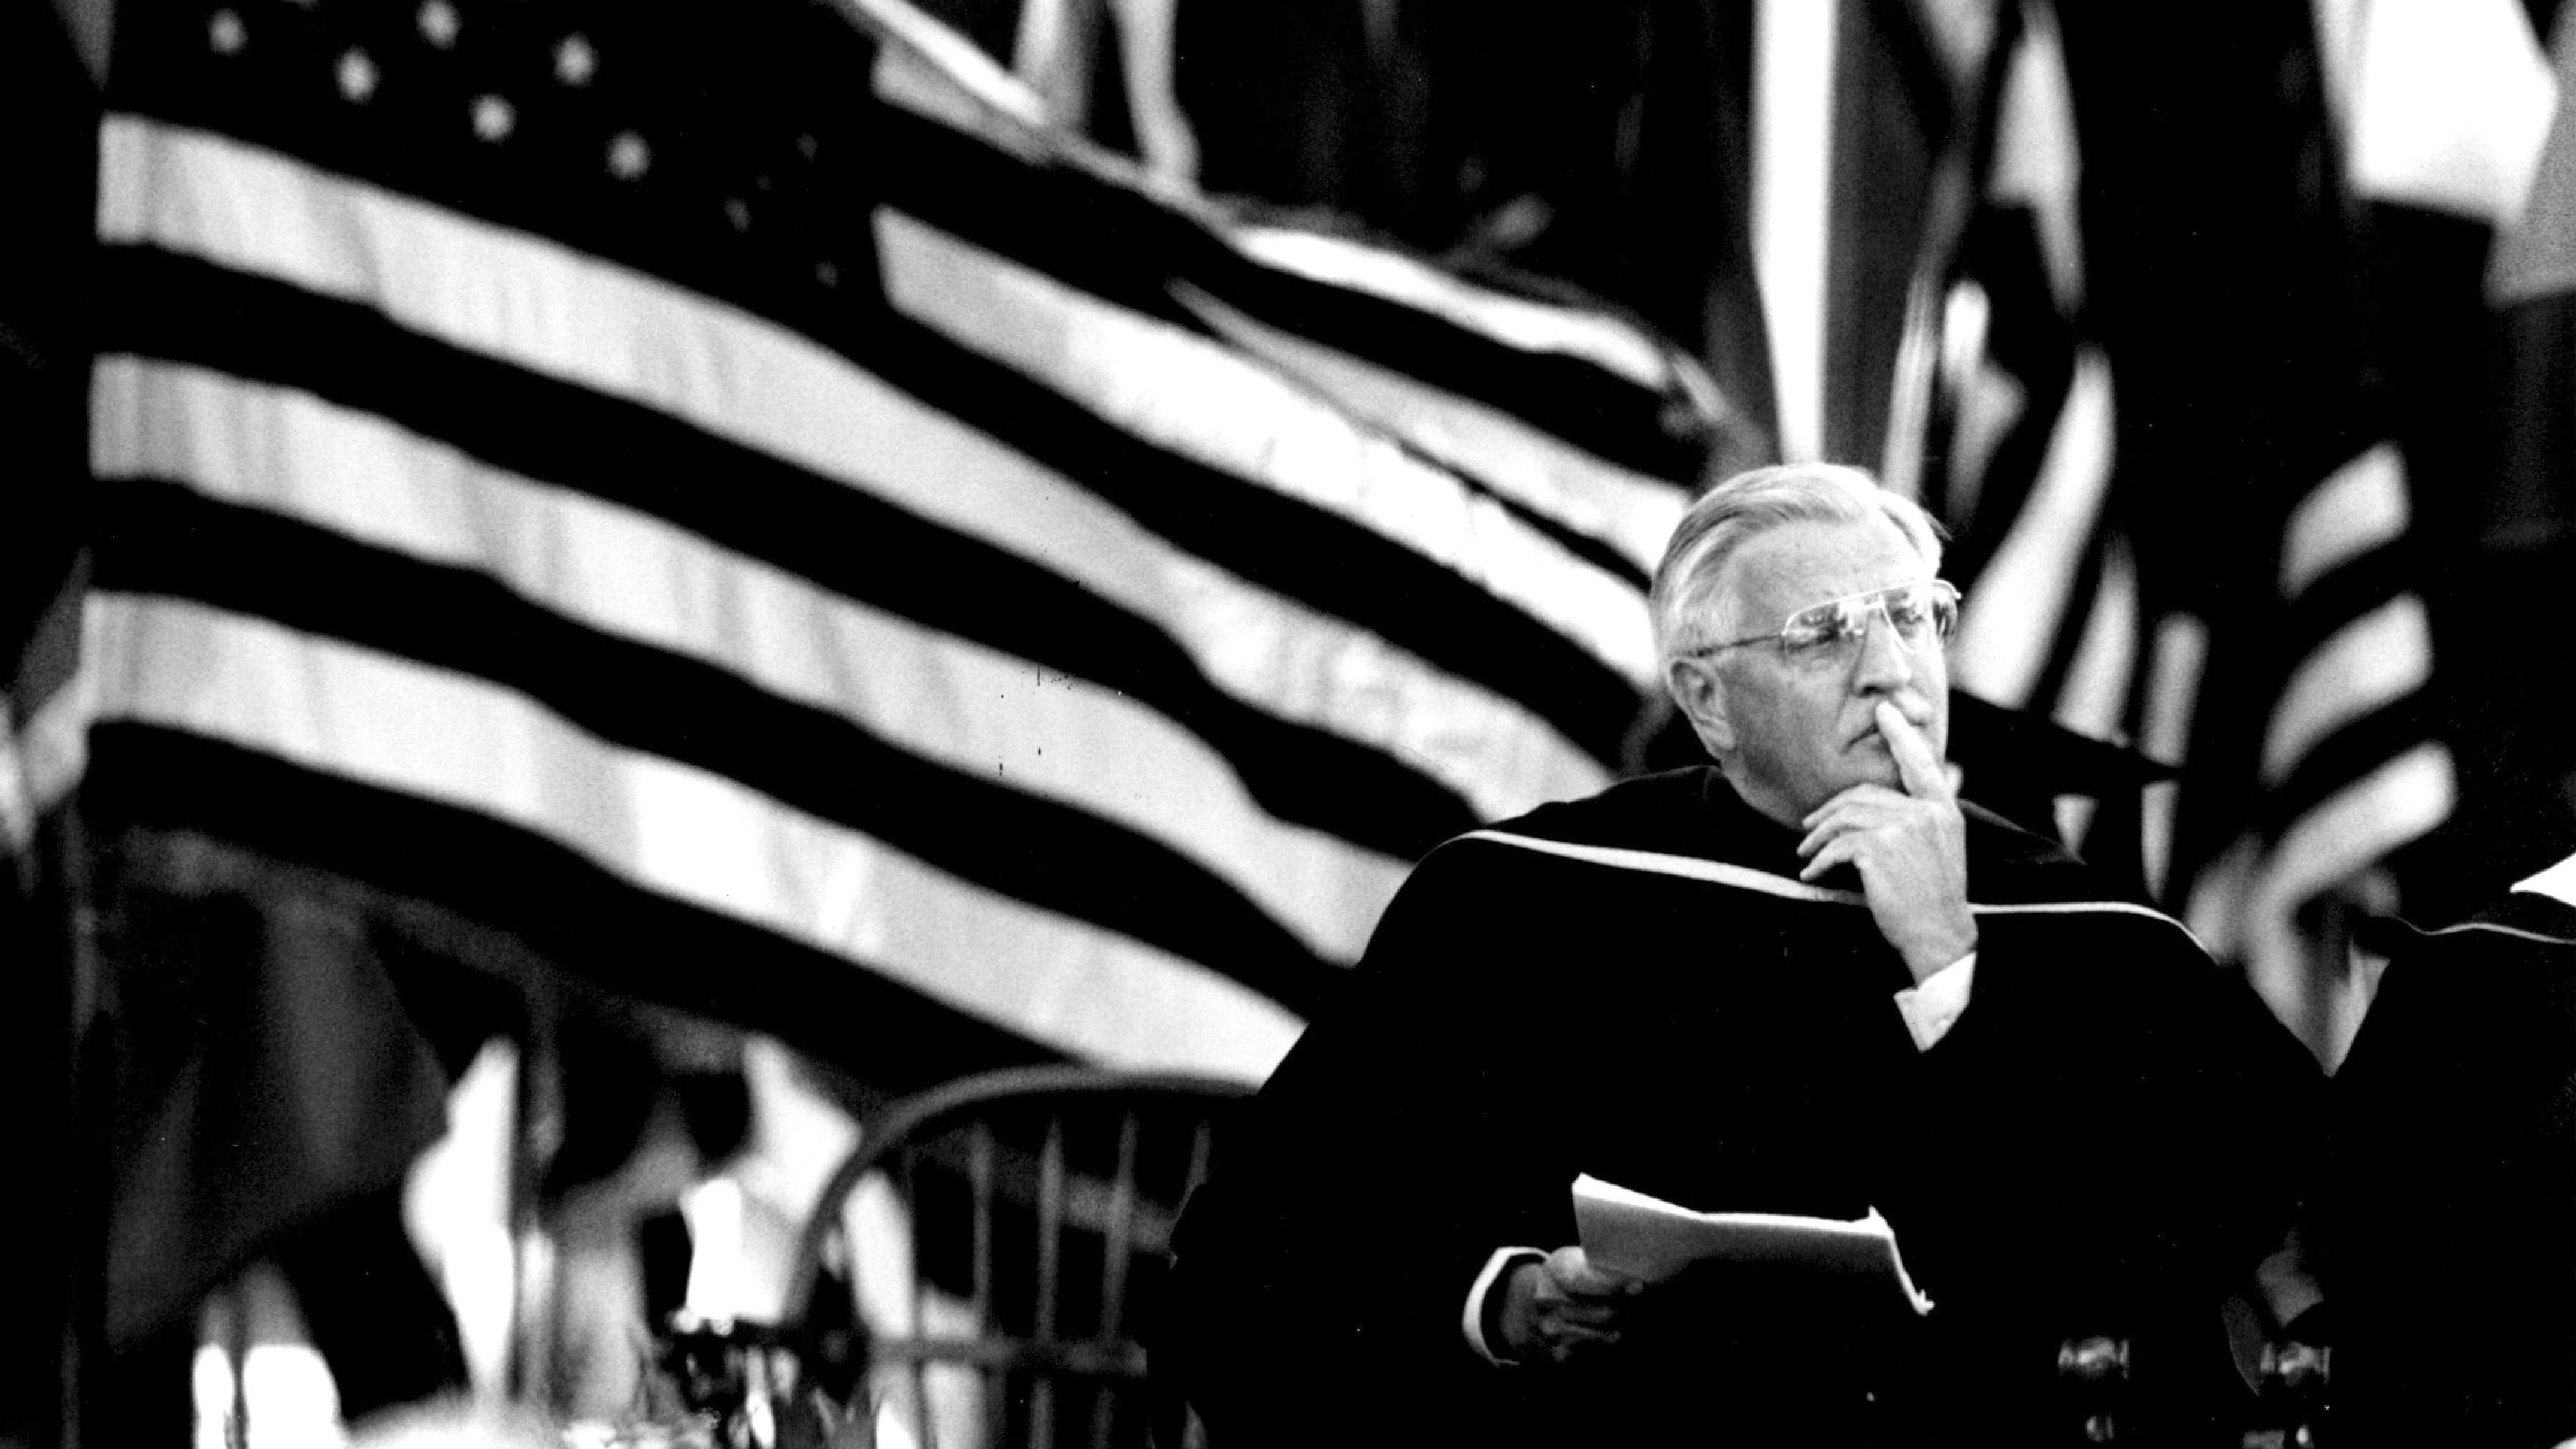 Video by Mark Vancleave. Former vice president and Minnesota statesman Walter Mondale reflects on his accomplishments and legacy.